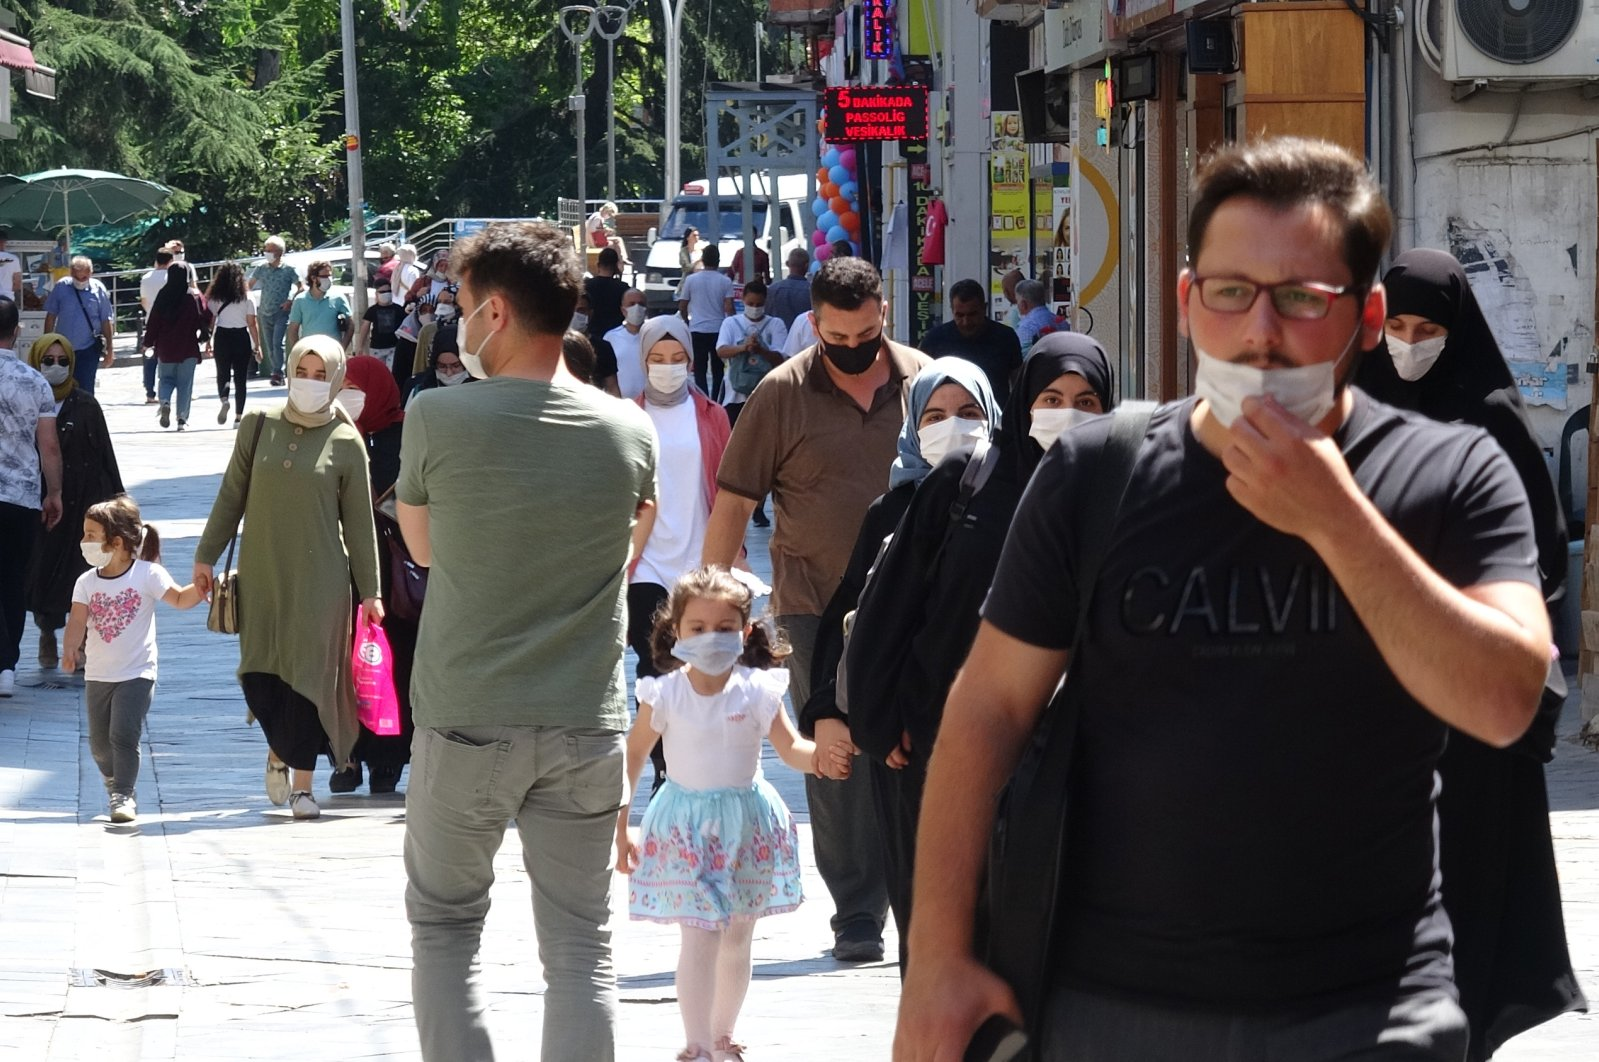 People wearing protective masks walk on a street in Trabzon, northern Turkey, Sept. 13, 2021. (DHA PHOTO)